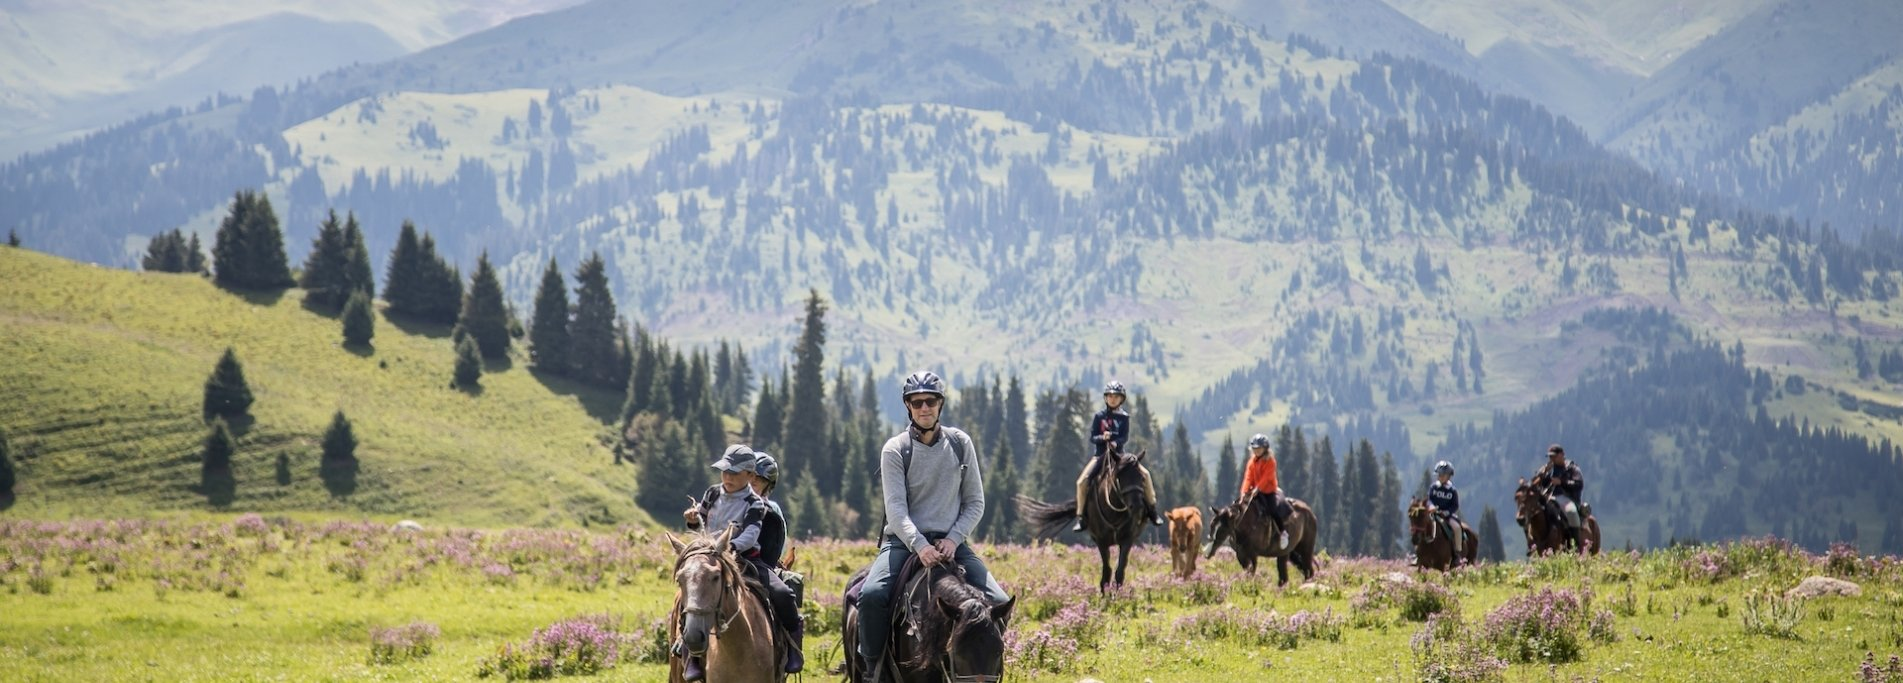 Trip to Tien-Shan mountains - Family tour in Kyrgyzstan